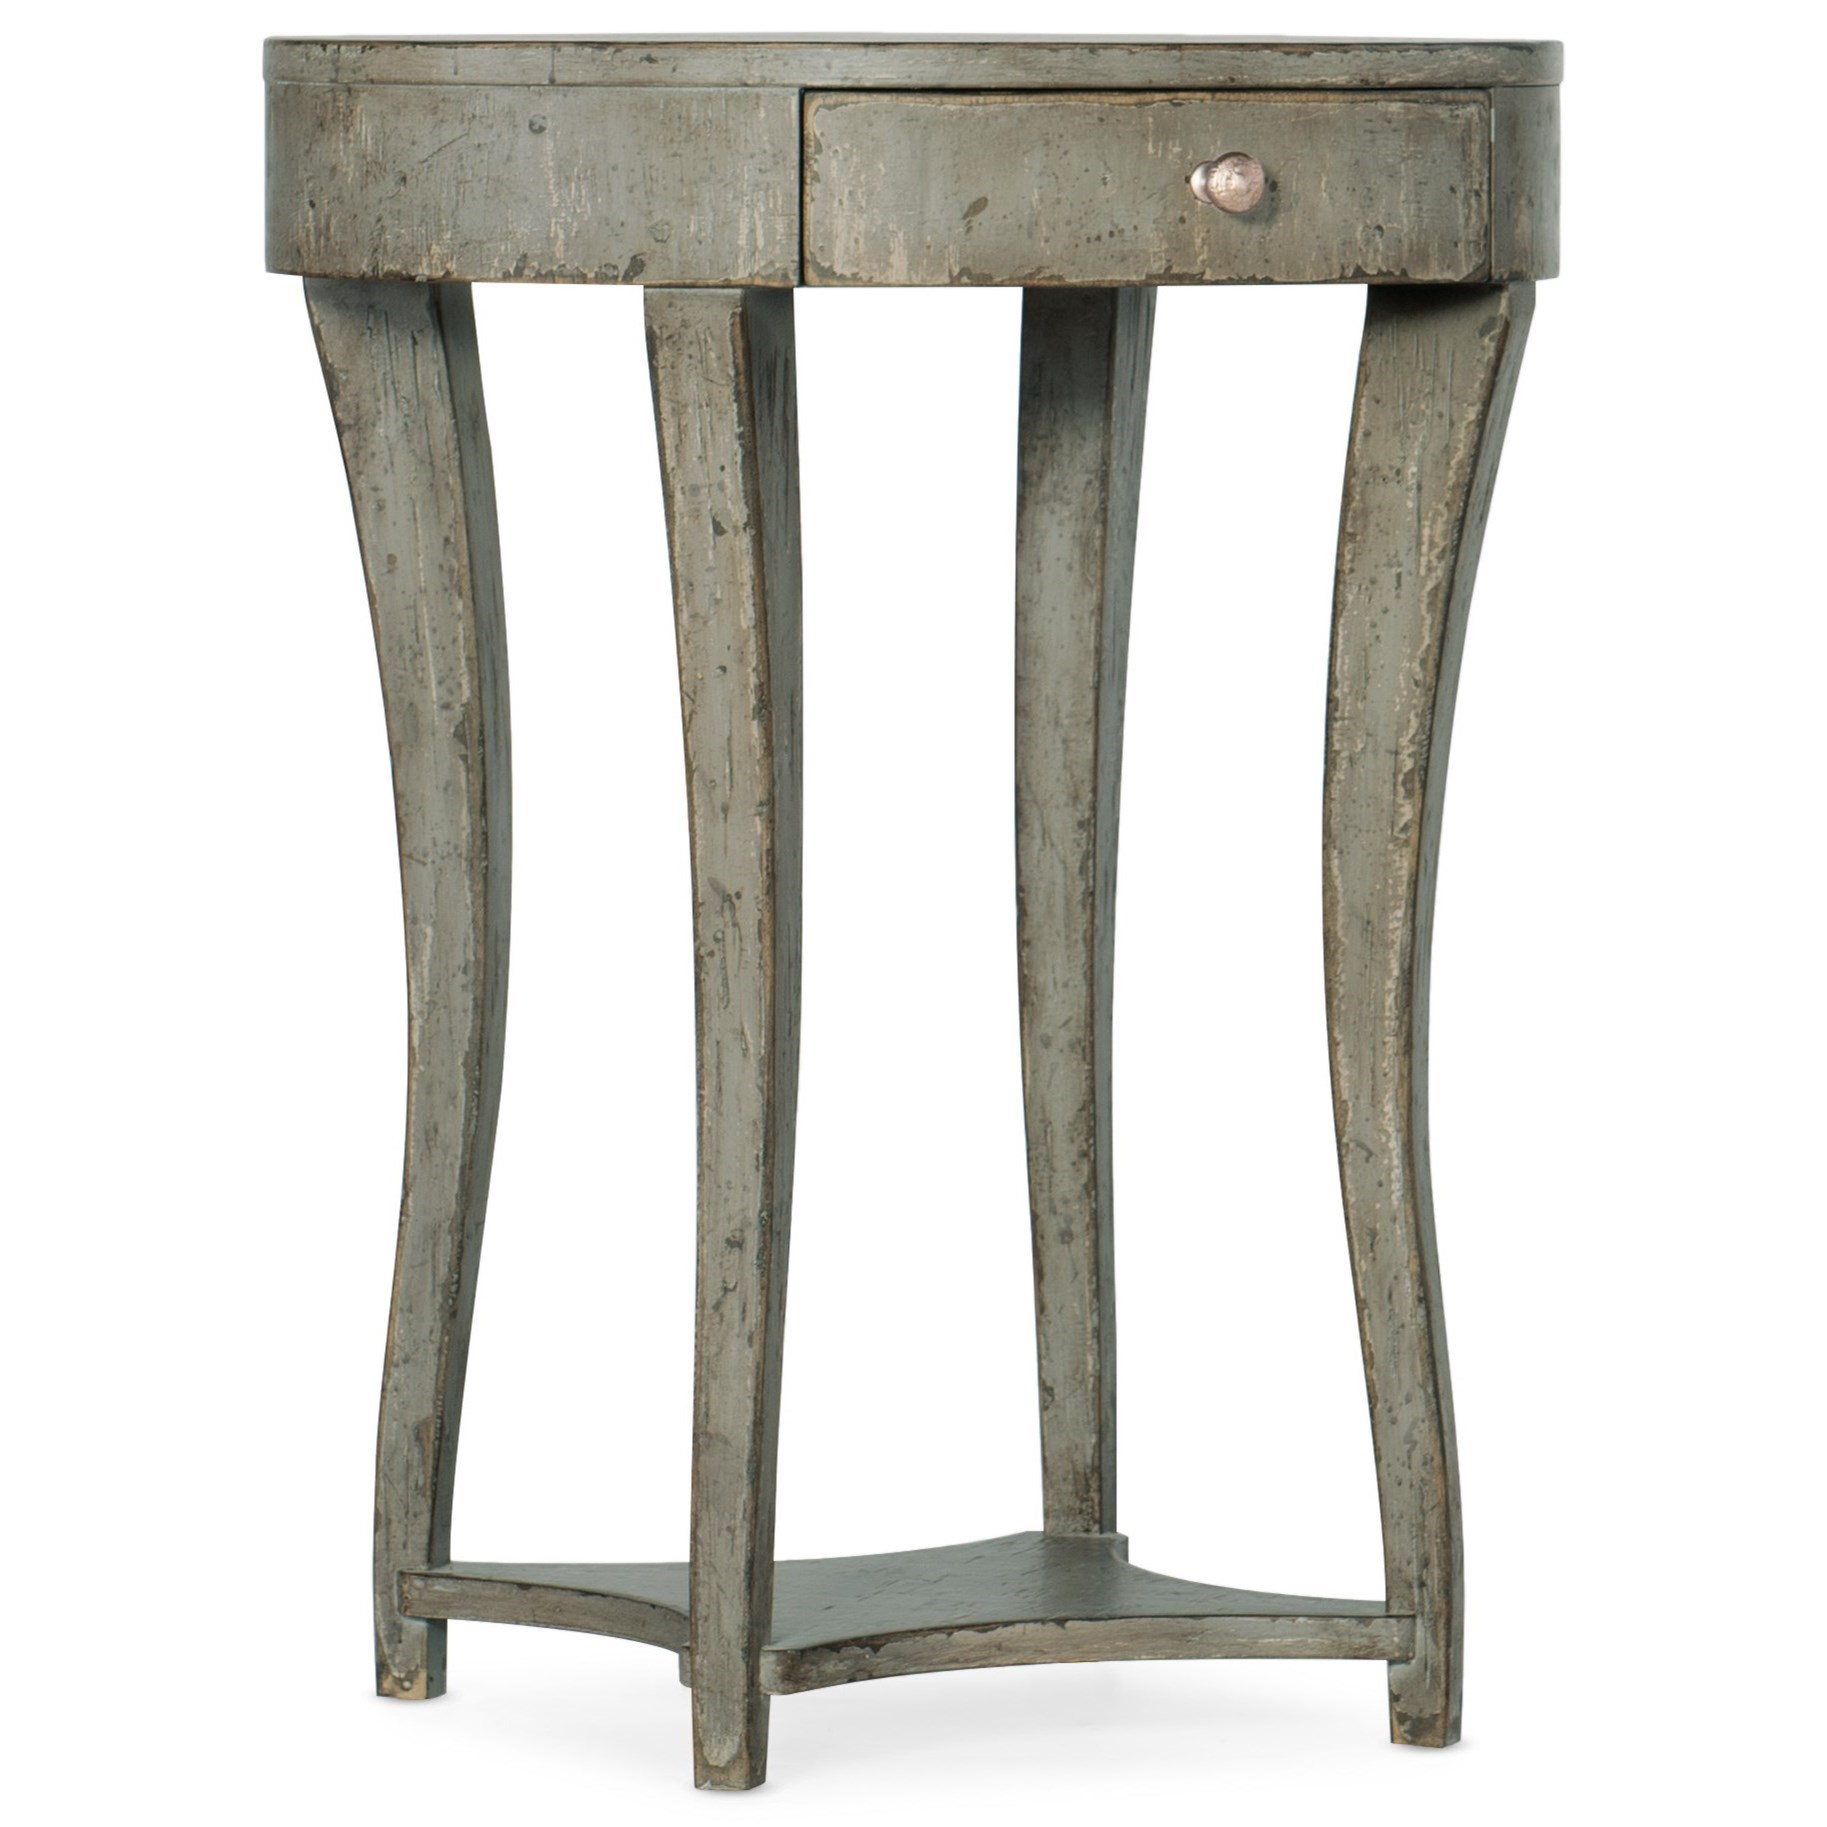 Alfresco La Sabbia One-Drawer Nightstand by Hooker Furniture at Alison Craig Home Furnishings